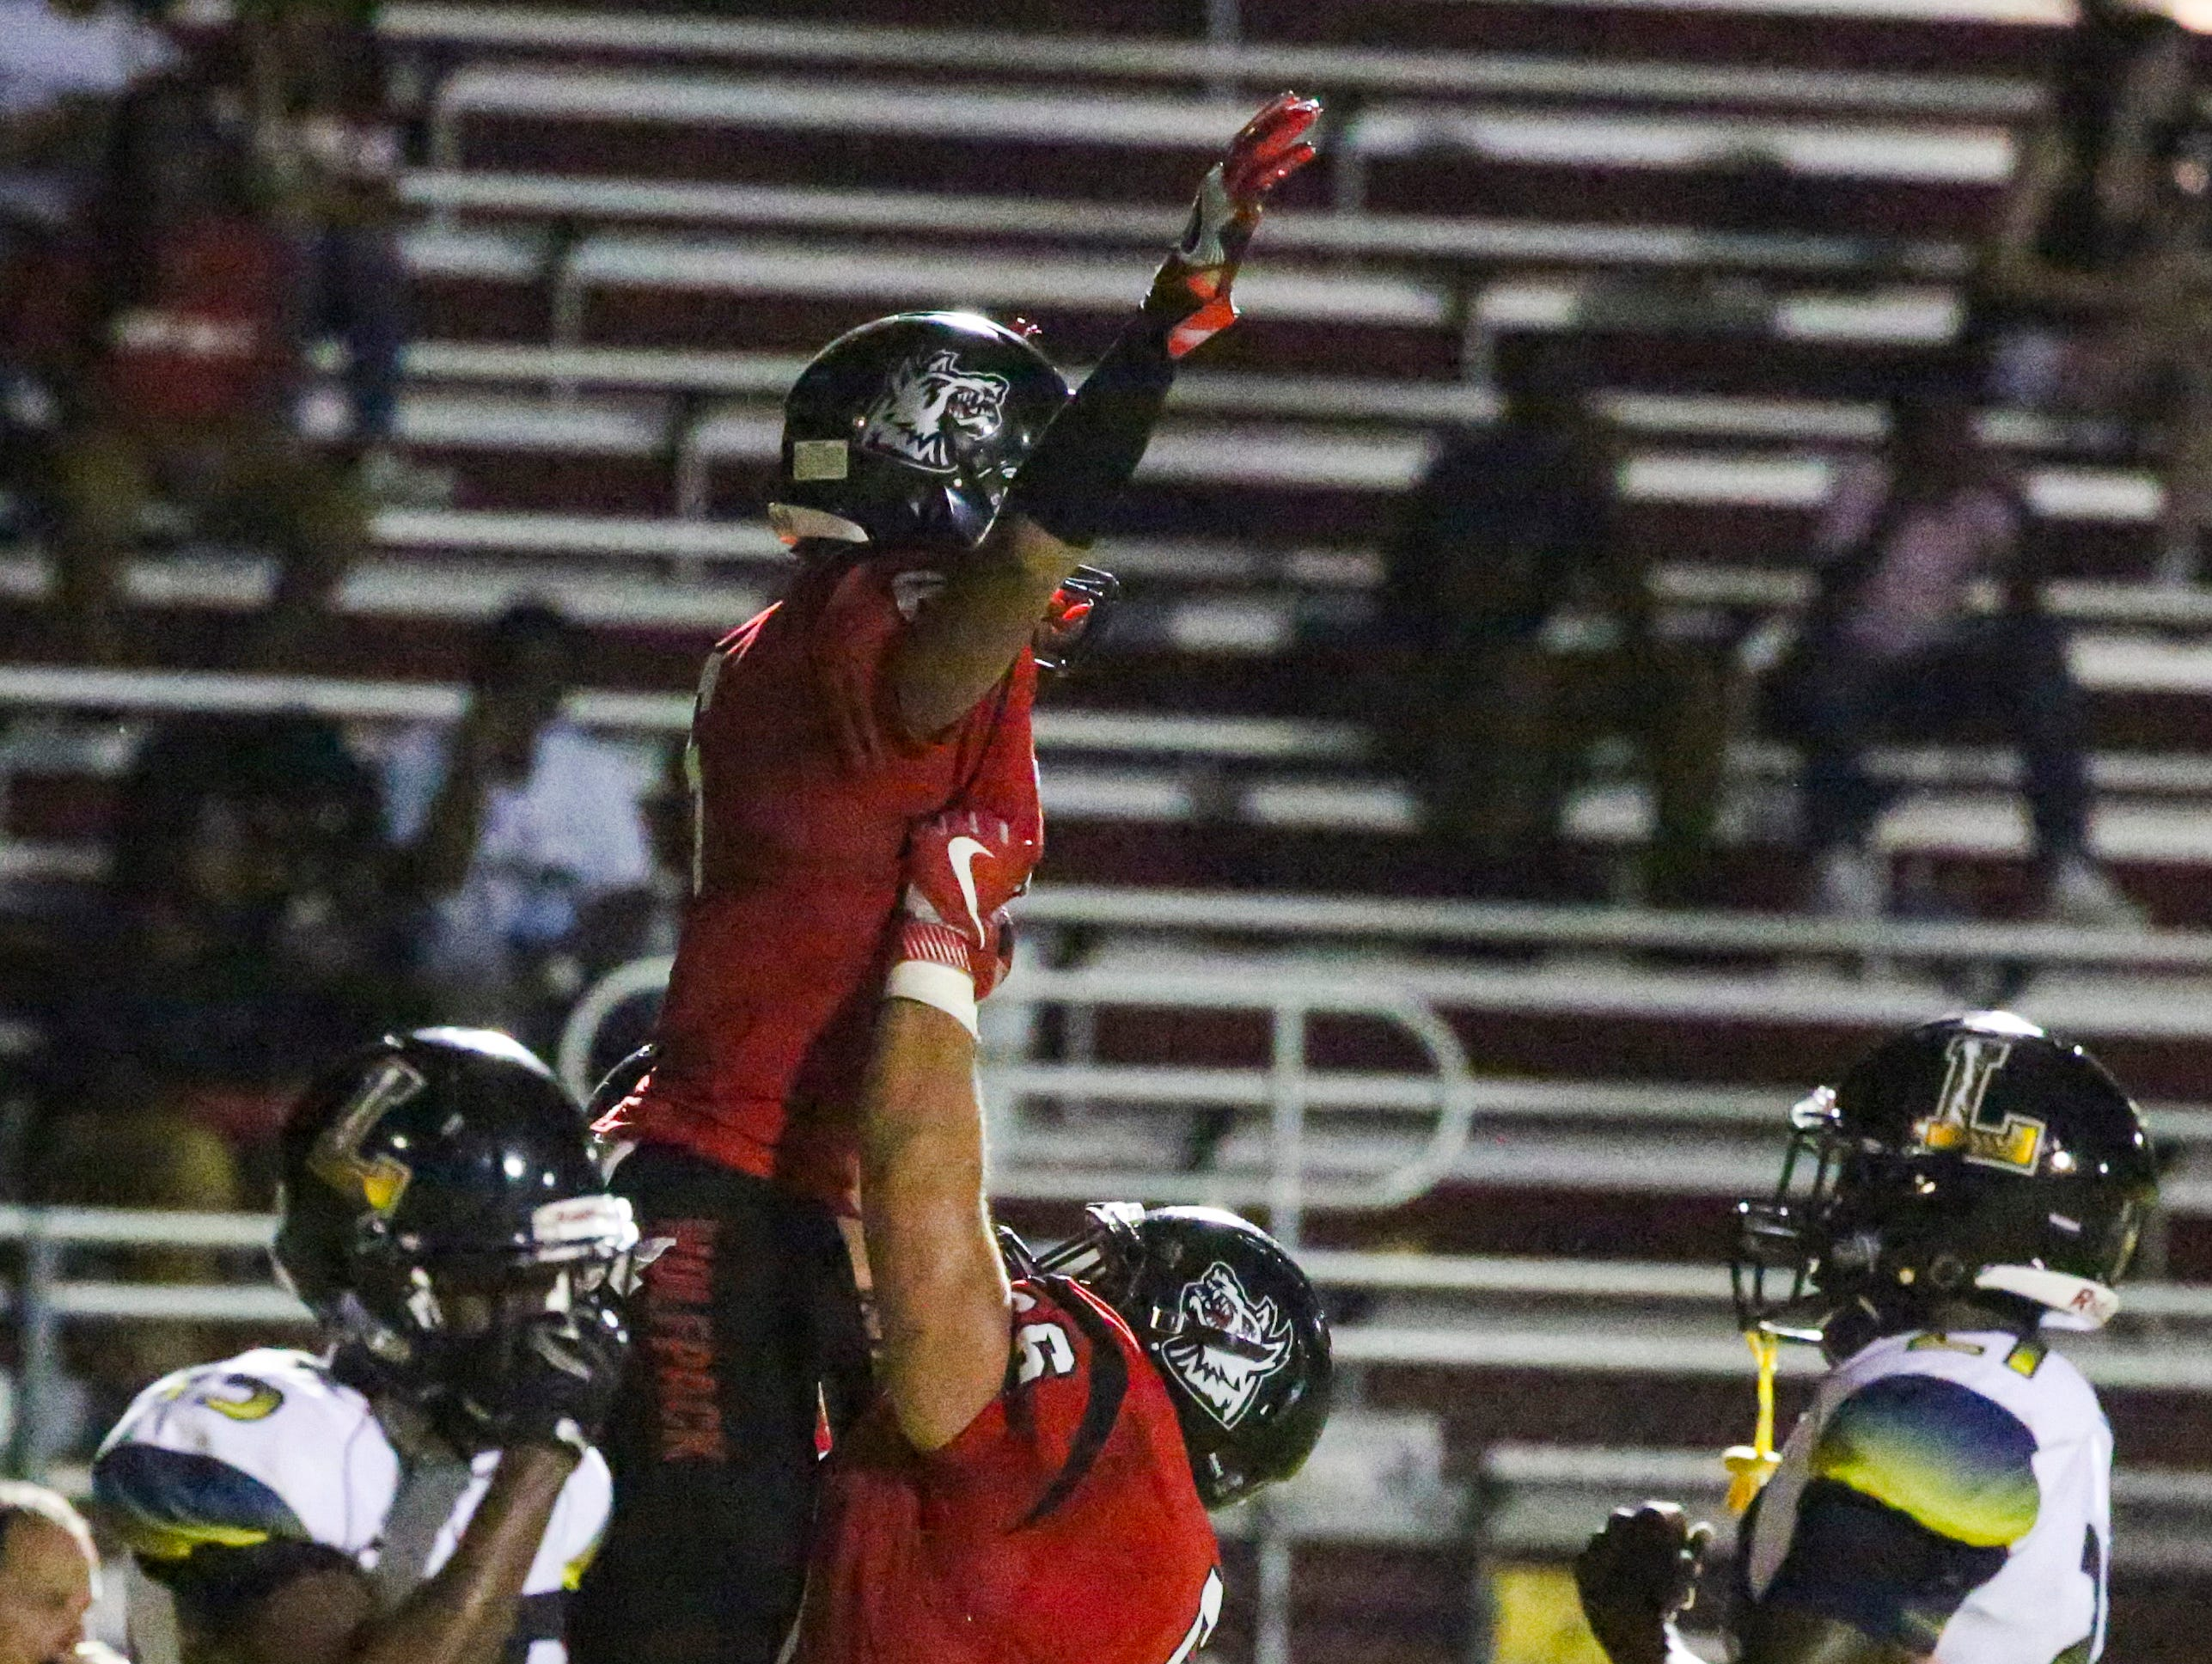 Bobby Souza lifts up teammate Jeshuan Jones in celebration after Jones scored in their third quarter for South Fort Myers. Lehigh played South Fort Myers in their football Friday night.